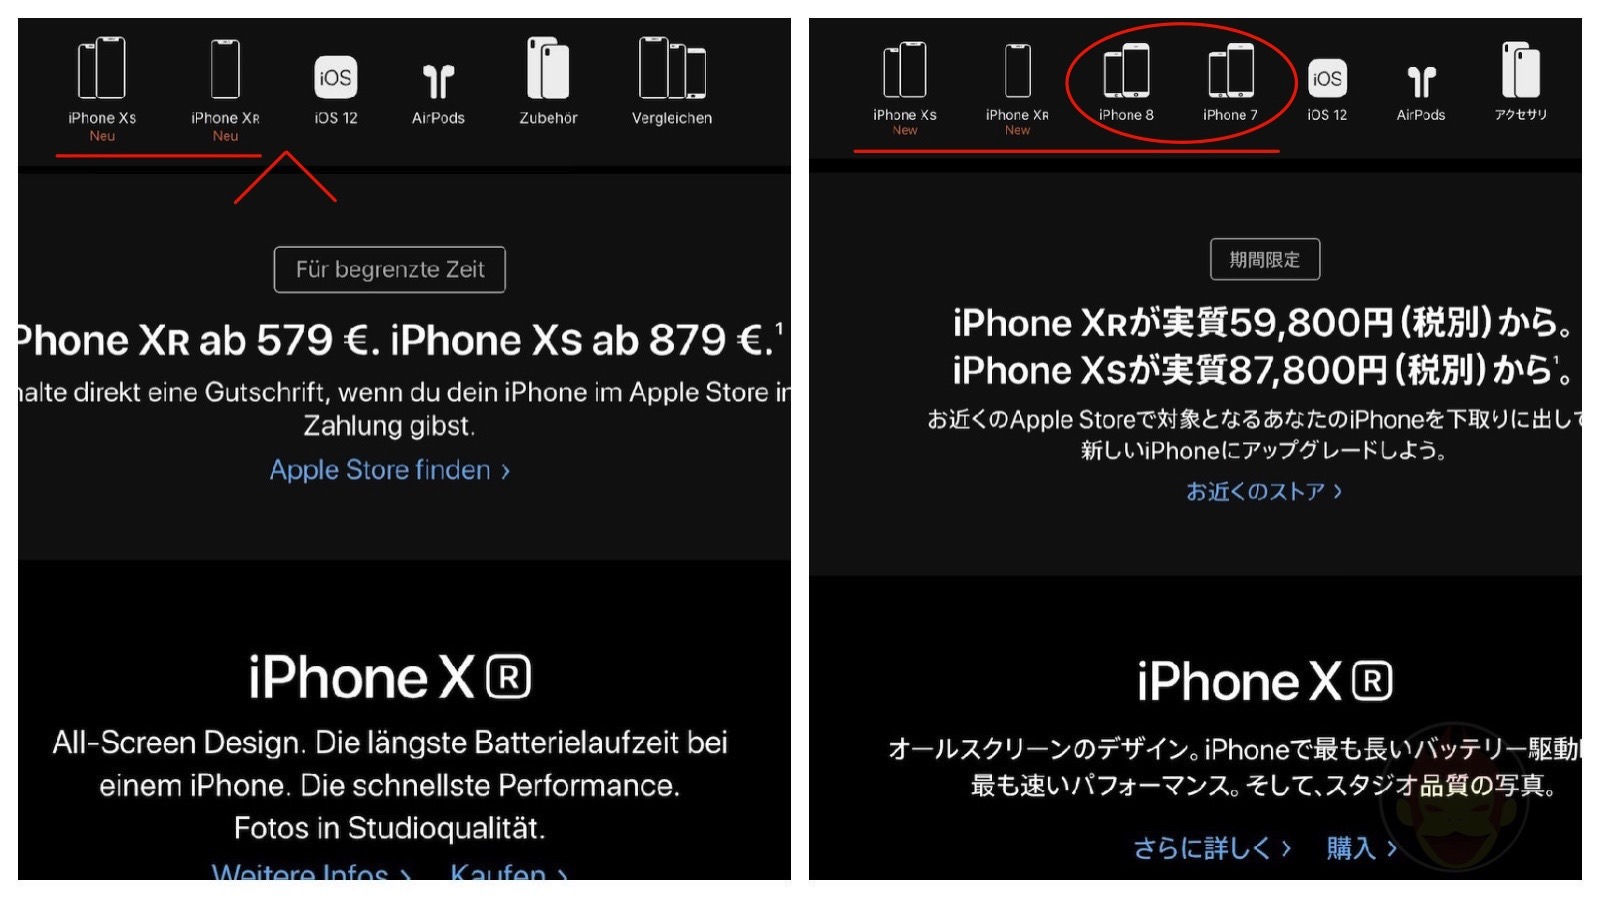 Iphone page comparison01